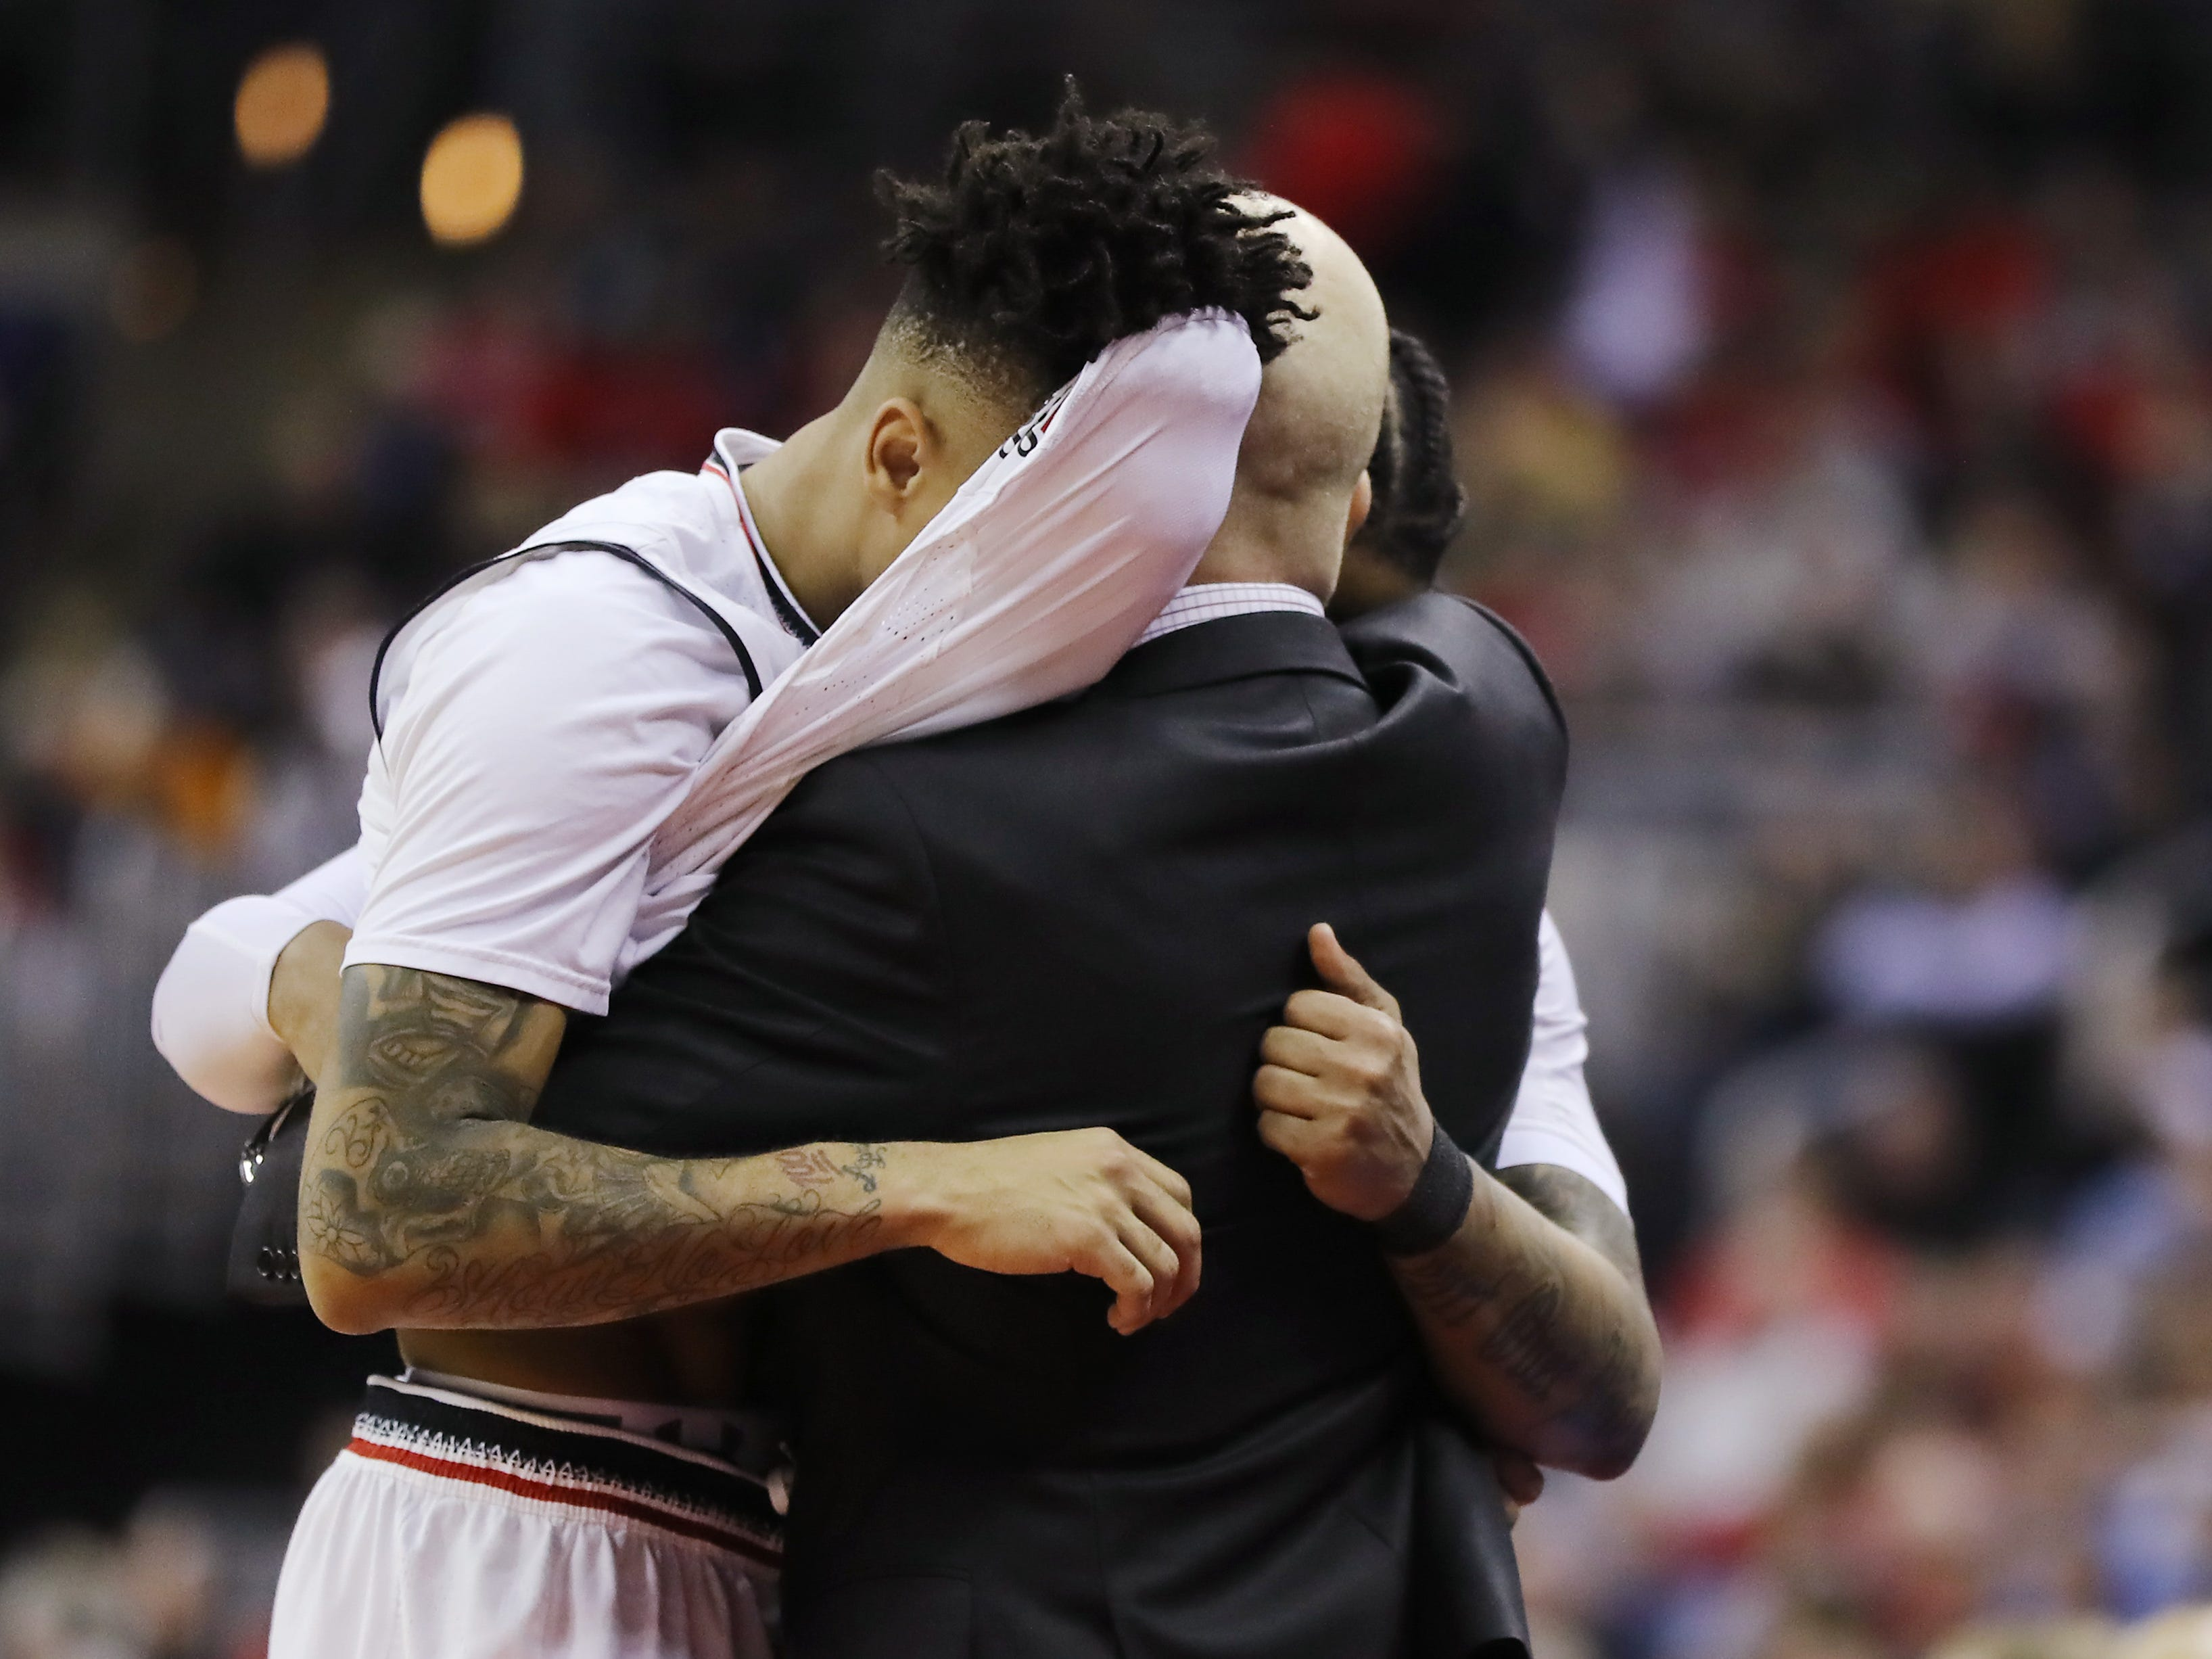 First round: No. 7 Cincinnati loses to No. 10 Iowa, 79-72.